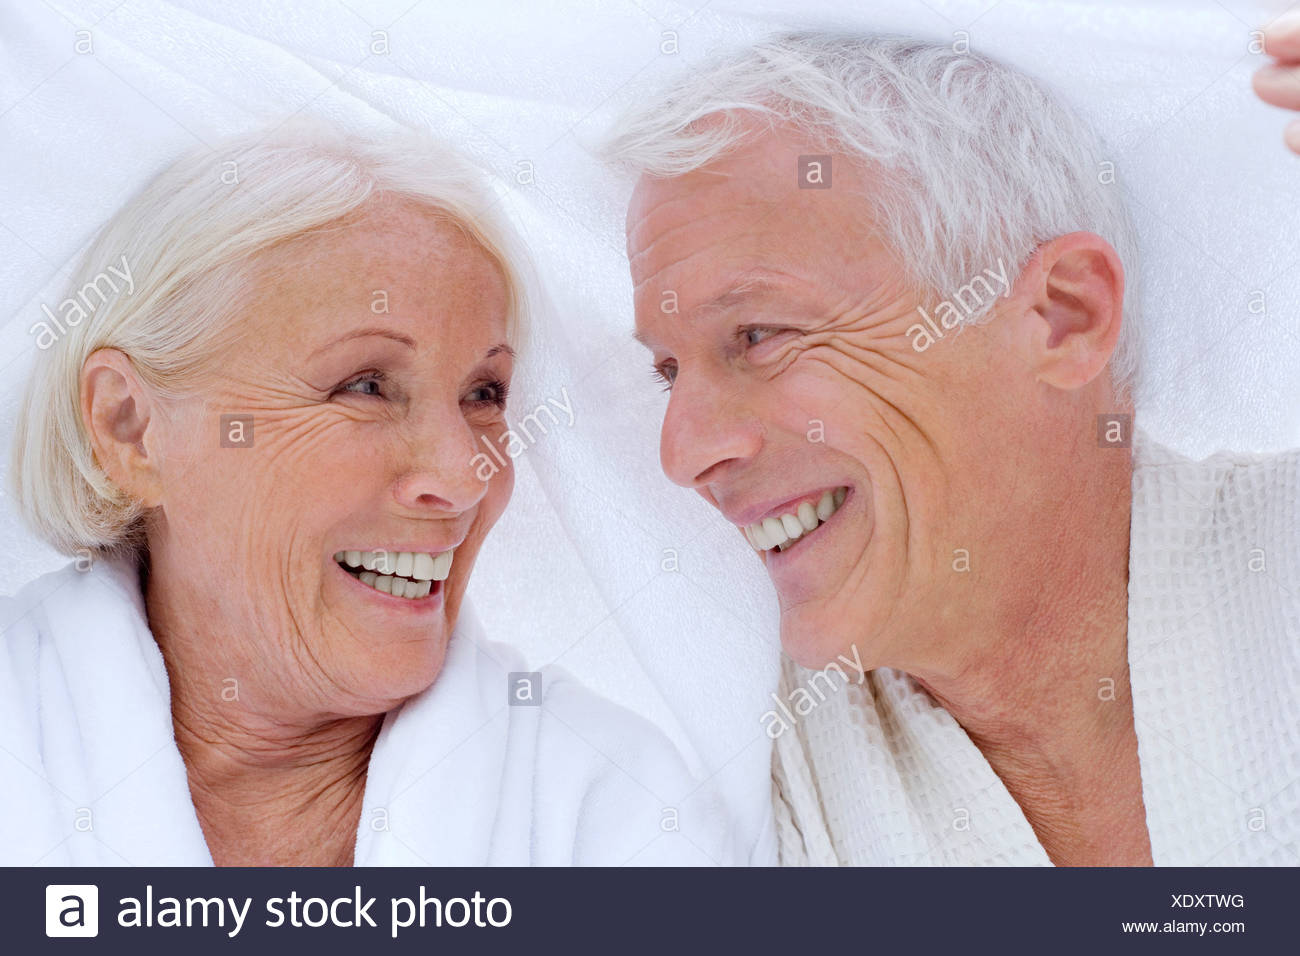 Germany, portrait of a senior couple in spa, close-up - Stock Image